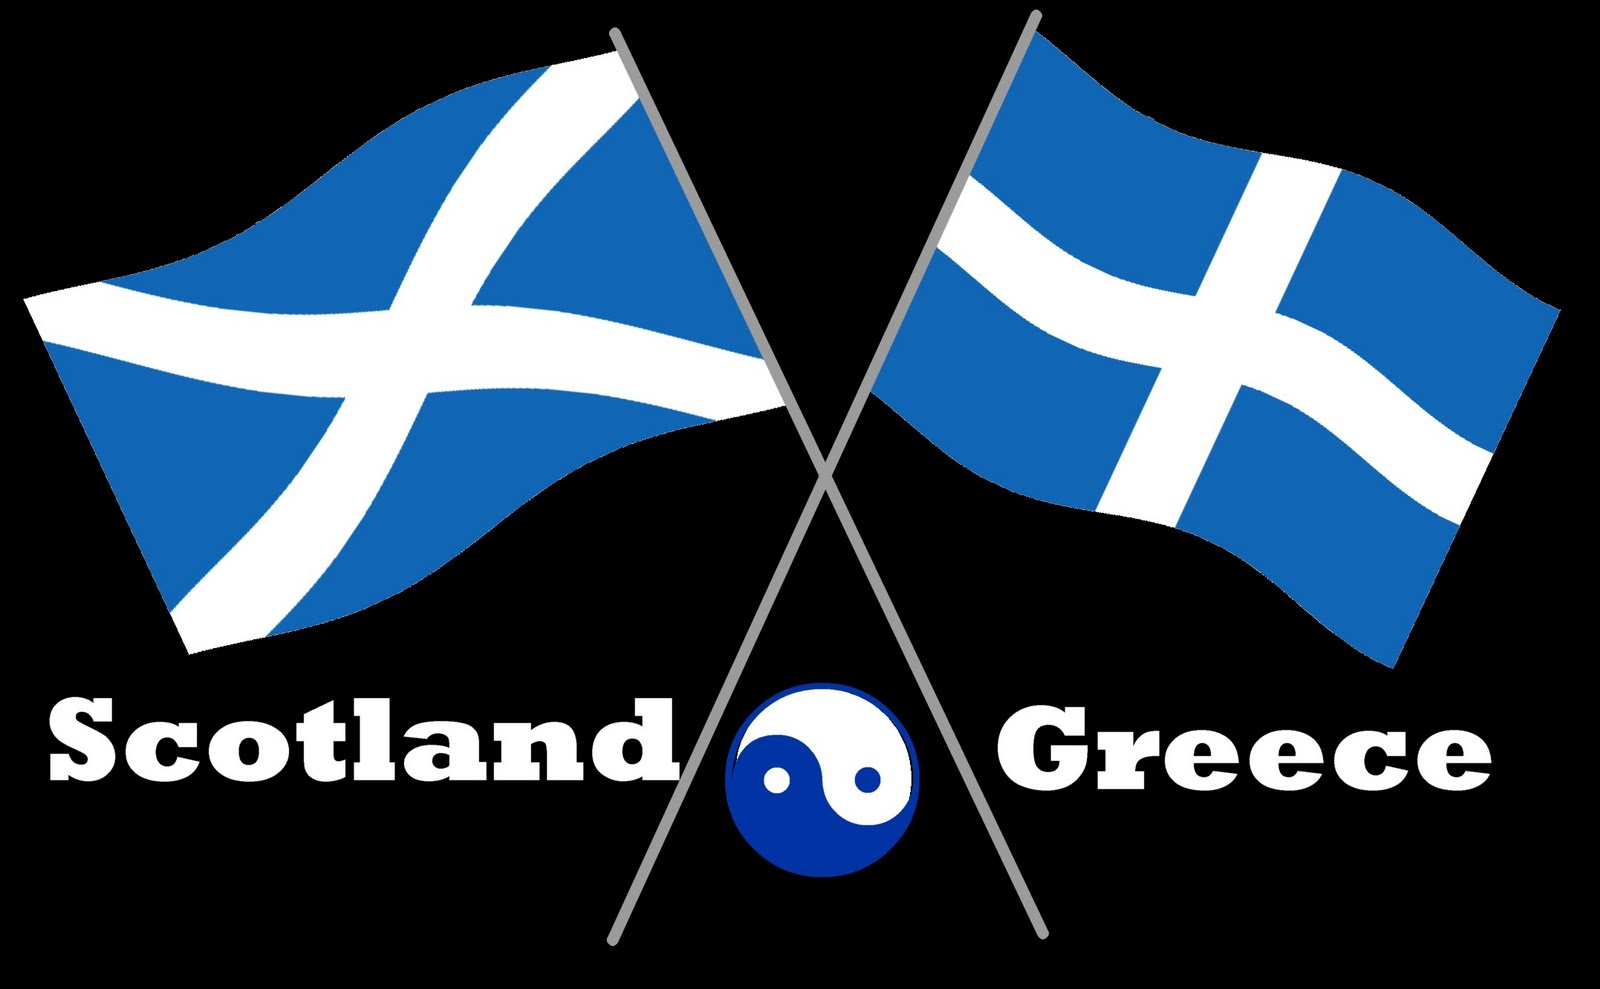 The voice of vexillology flags heraldry scotland and greece the voice of vexillology flags heraldry scotland and greece fraternal twins biocorpaavc Choice Image